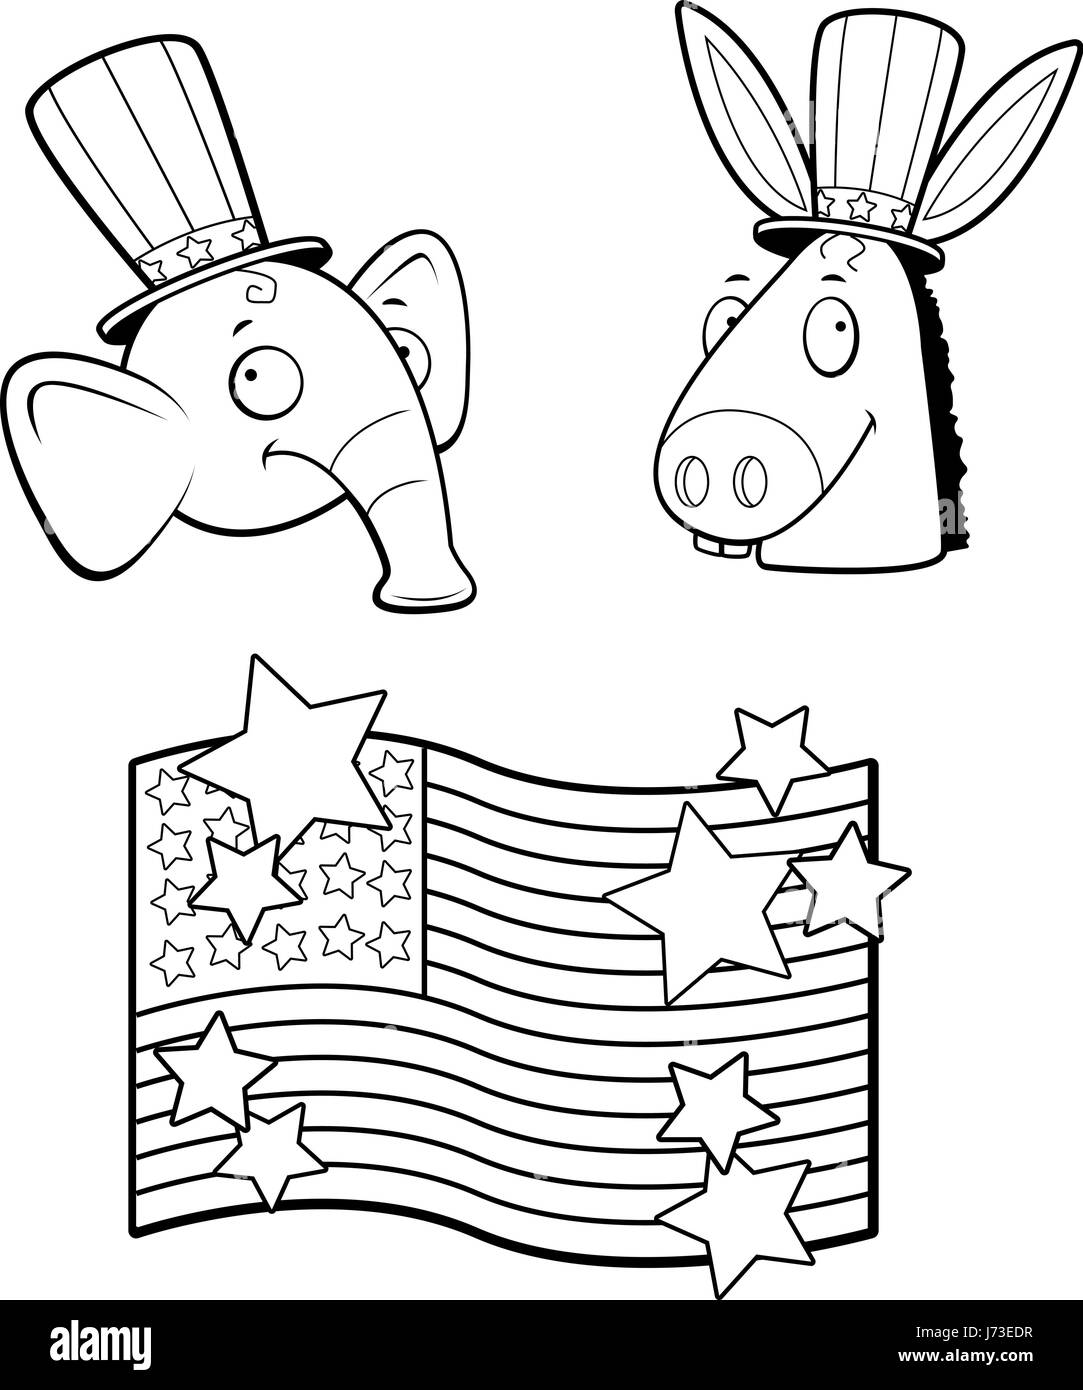 A Cartoon Donkey And Elephant Political Characters